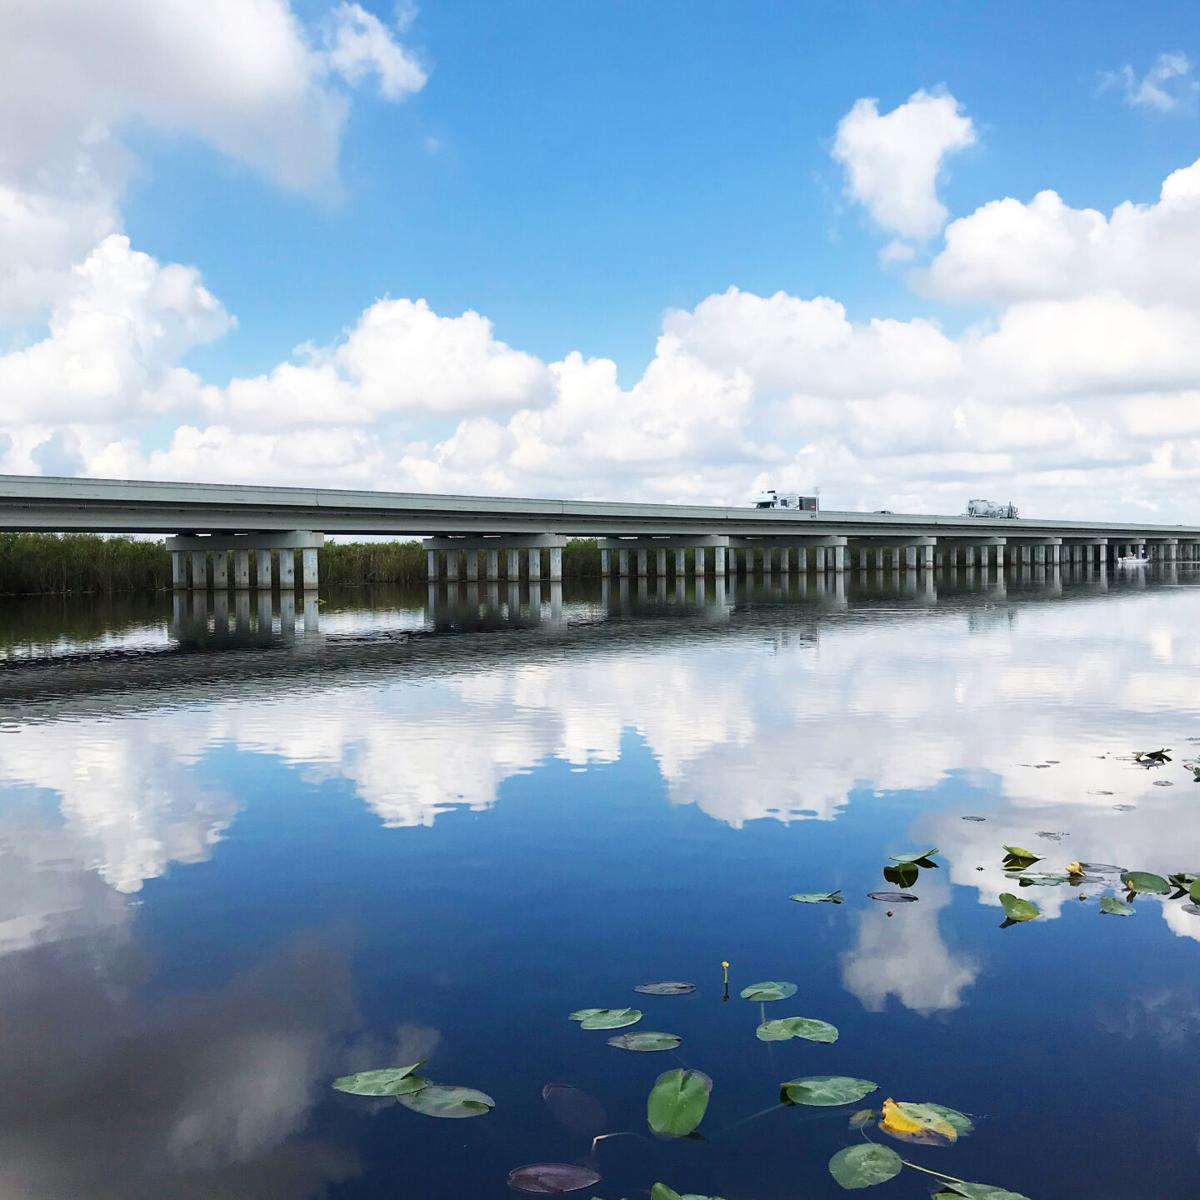 The one-mile bridge on Tamiami Trail was completed in 2013. This elevated portion of the roadway showed that it was possible to construct parts of the bridge to allow crucial water flow from the L-29 canal into the park.